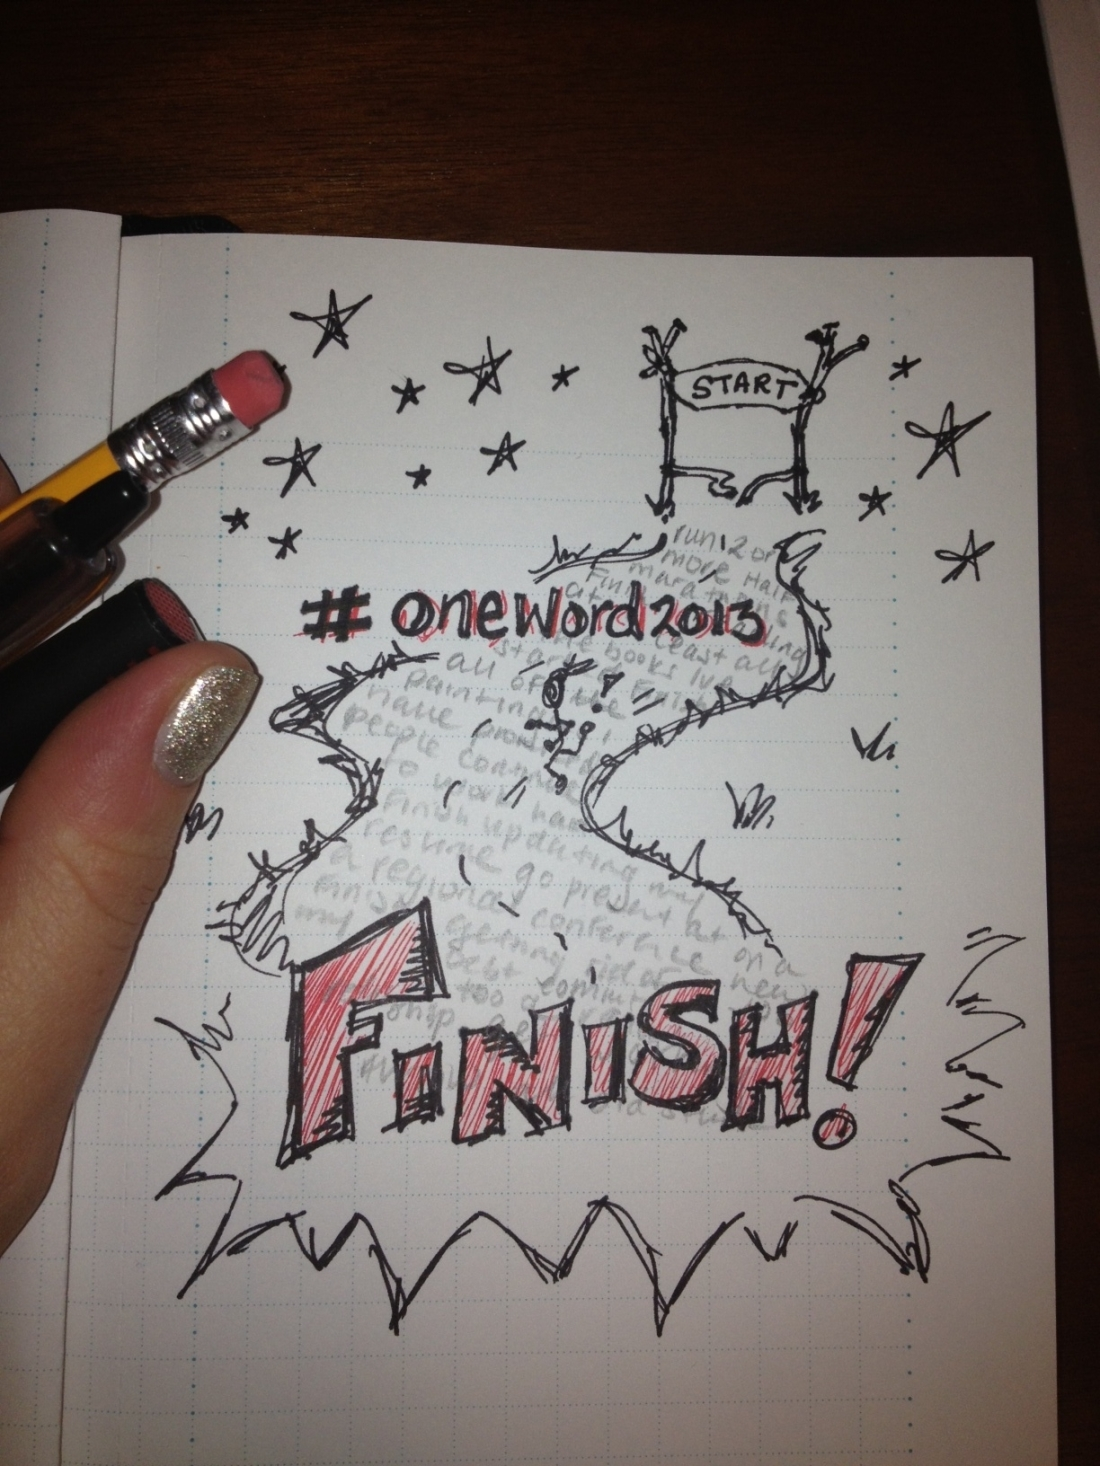 my #oneword2013 - finish.